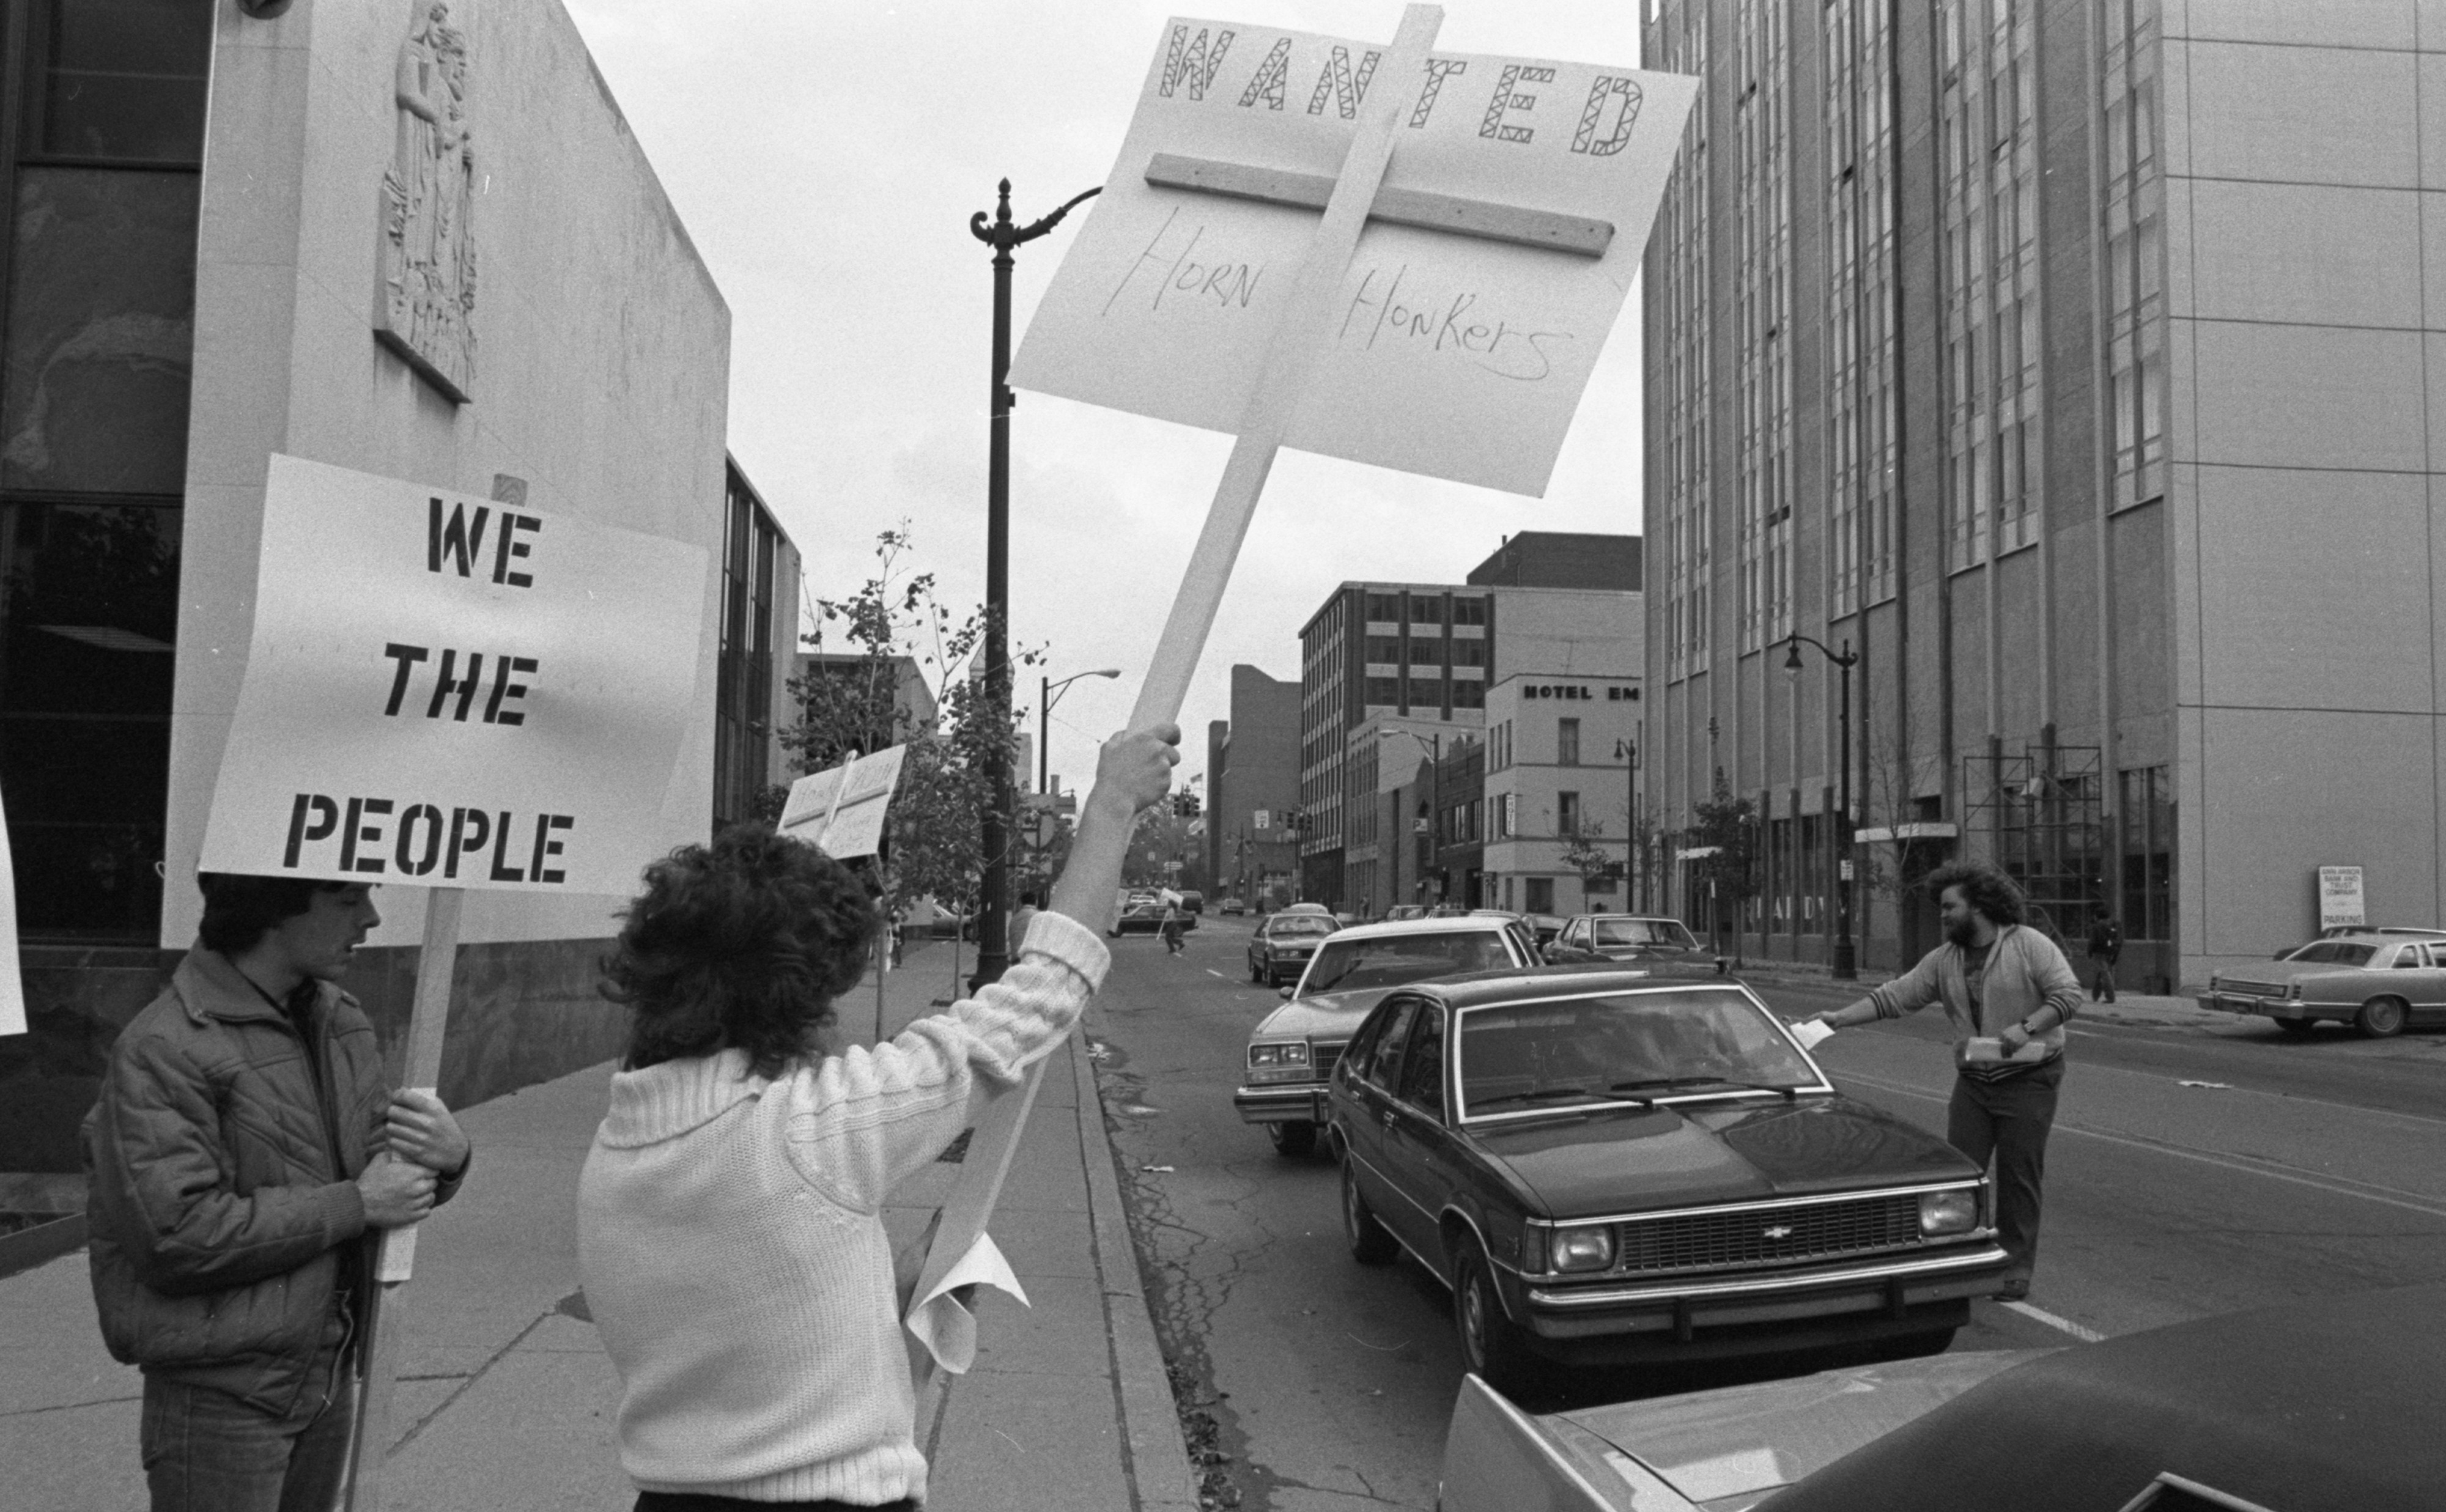 Picketers Protest Closing Of Danish News Adult Bookstore, October 1982 image